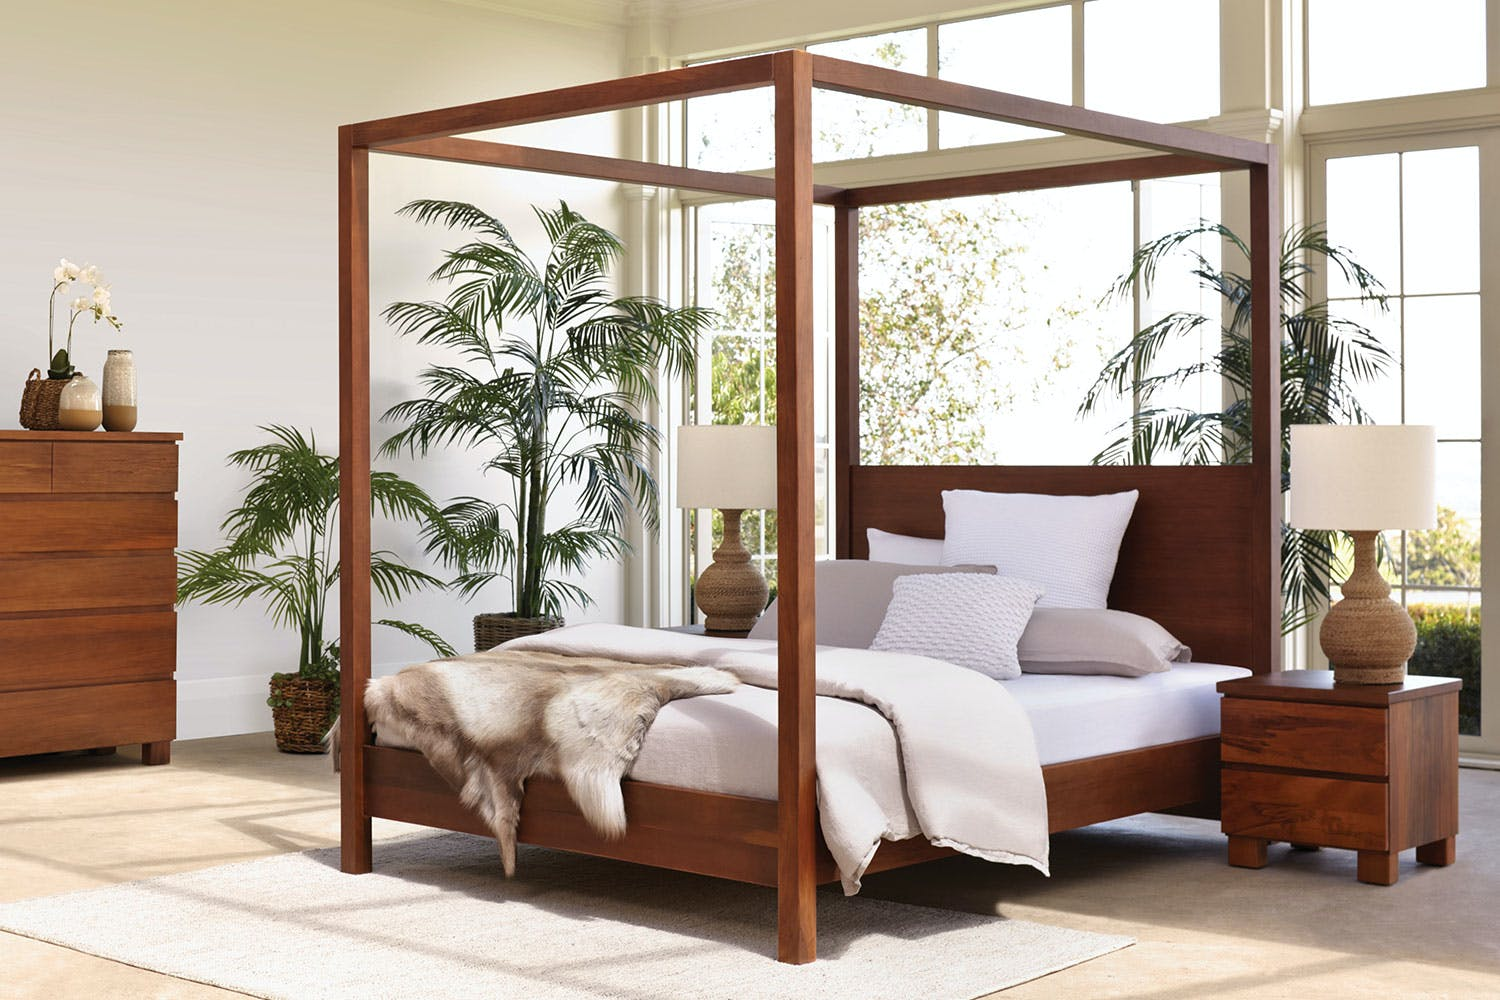 Riverwood 4 Poster Queen Bed Frame By Sorenmobler Harvey Norman New Zealand